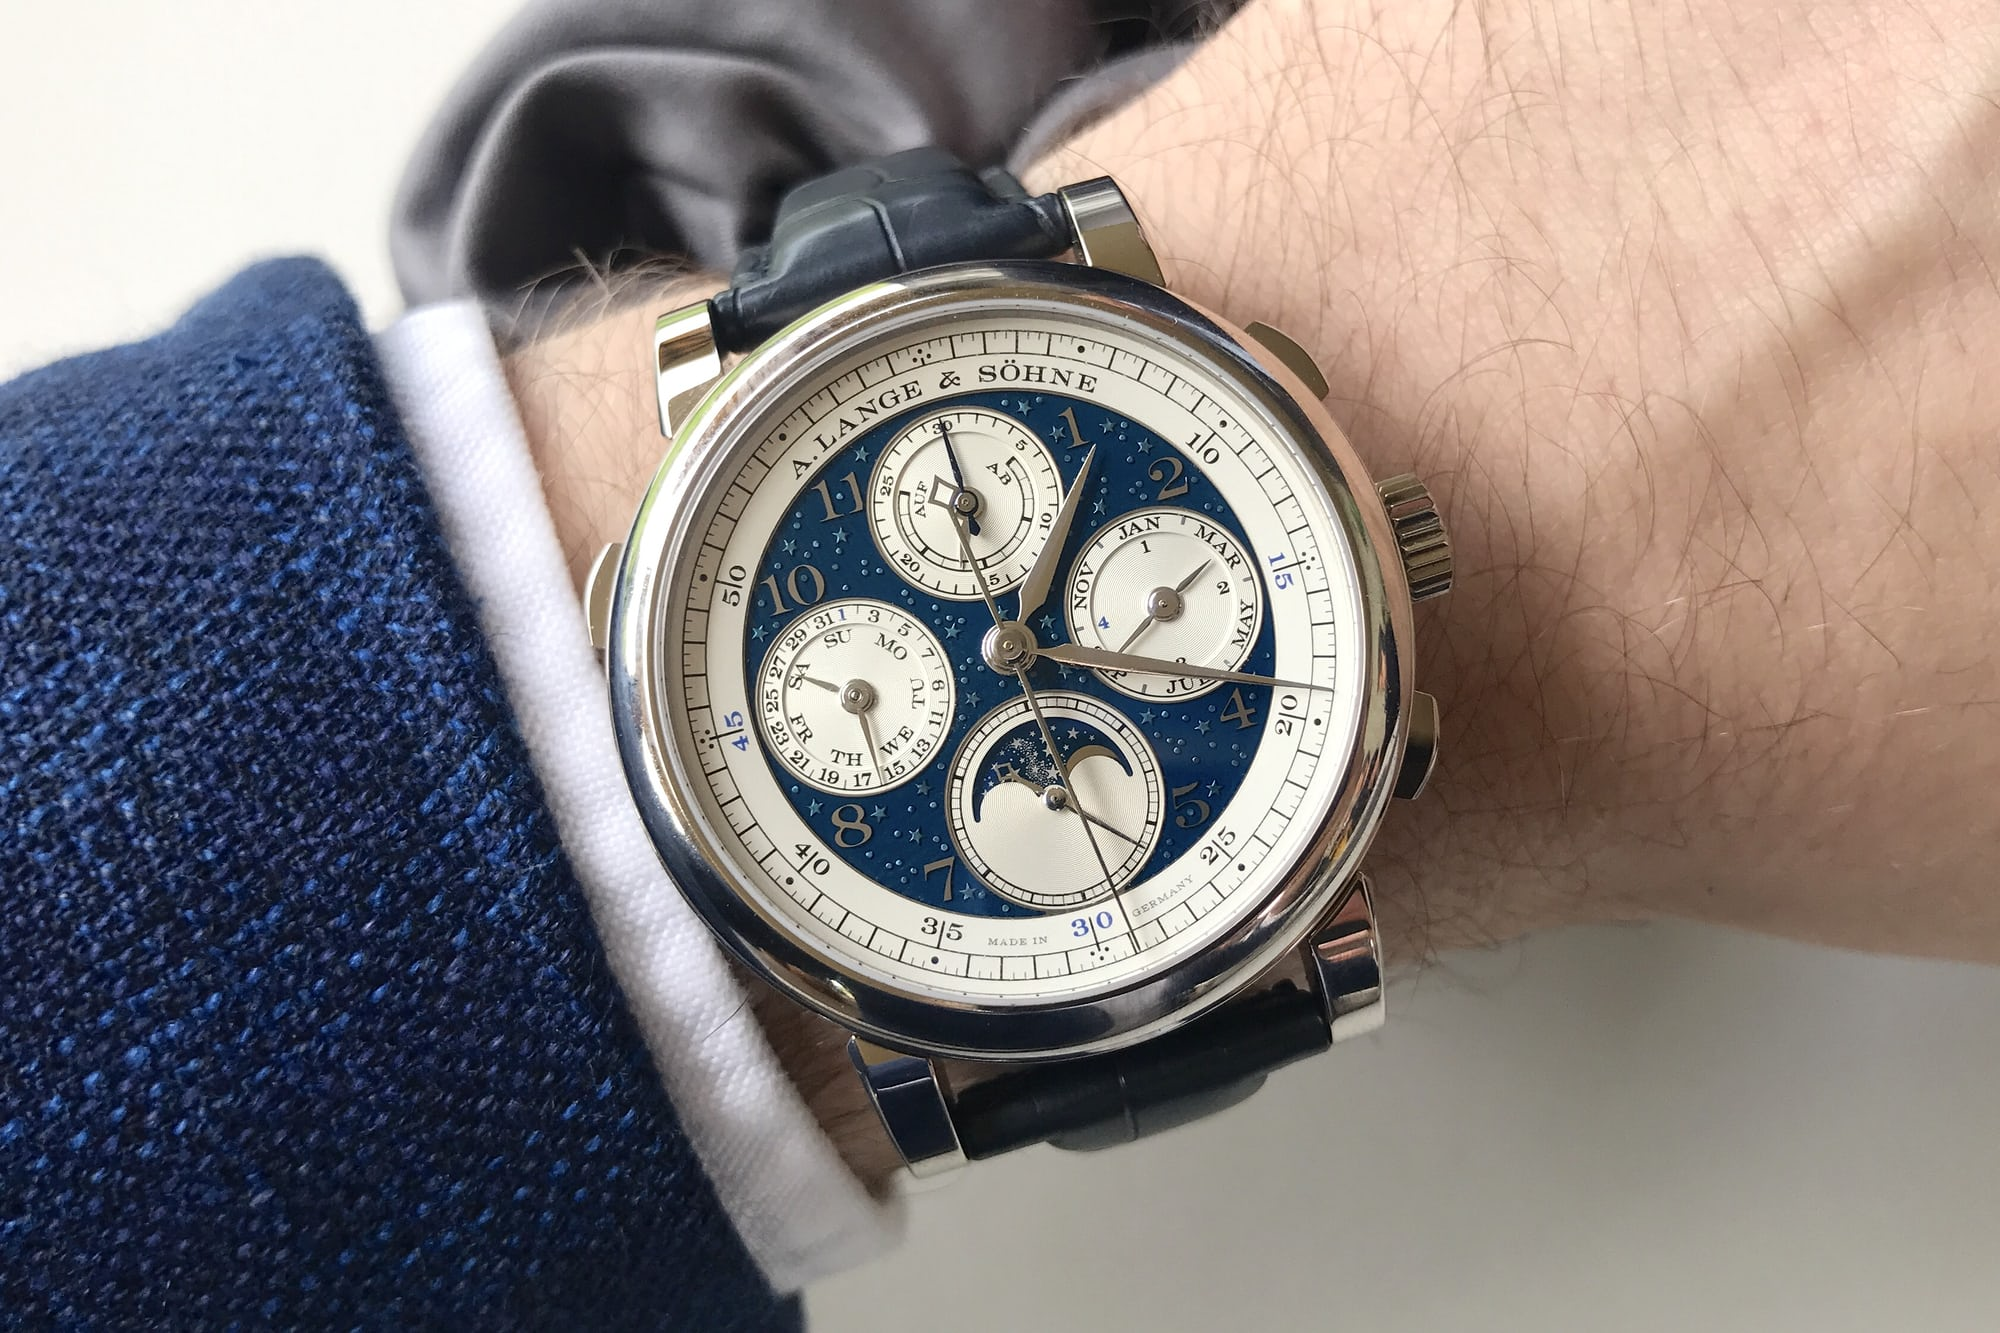 1815 Rattrapante Perpetual Calendar Handwerkskunst live photos introducing: the a. lange & shne 1815 rattrapante perpetual calendar handwerkskunst (live pics & pricing) Introducing: The A. Lange & Shne 1815 Rattrapante Perpetual Calendar Handwerkskunst (Live Pics & Pricing) IMG 2467